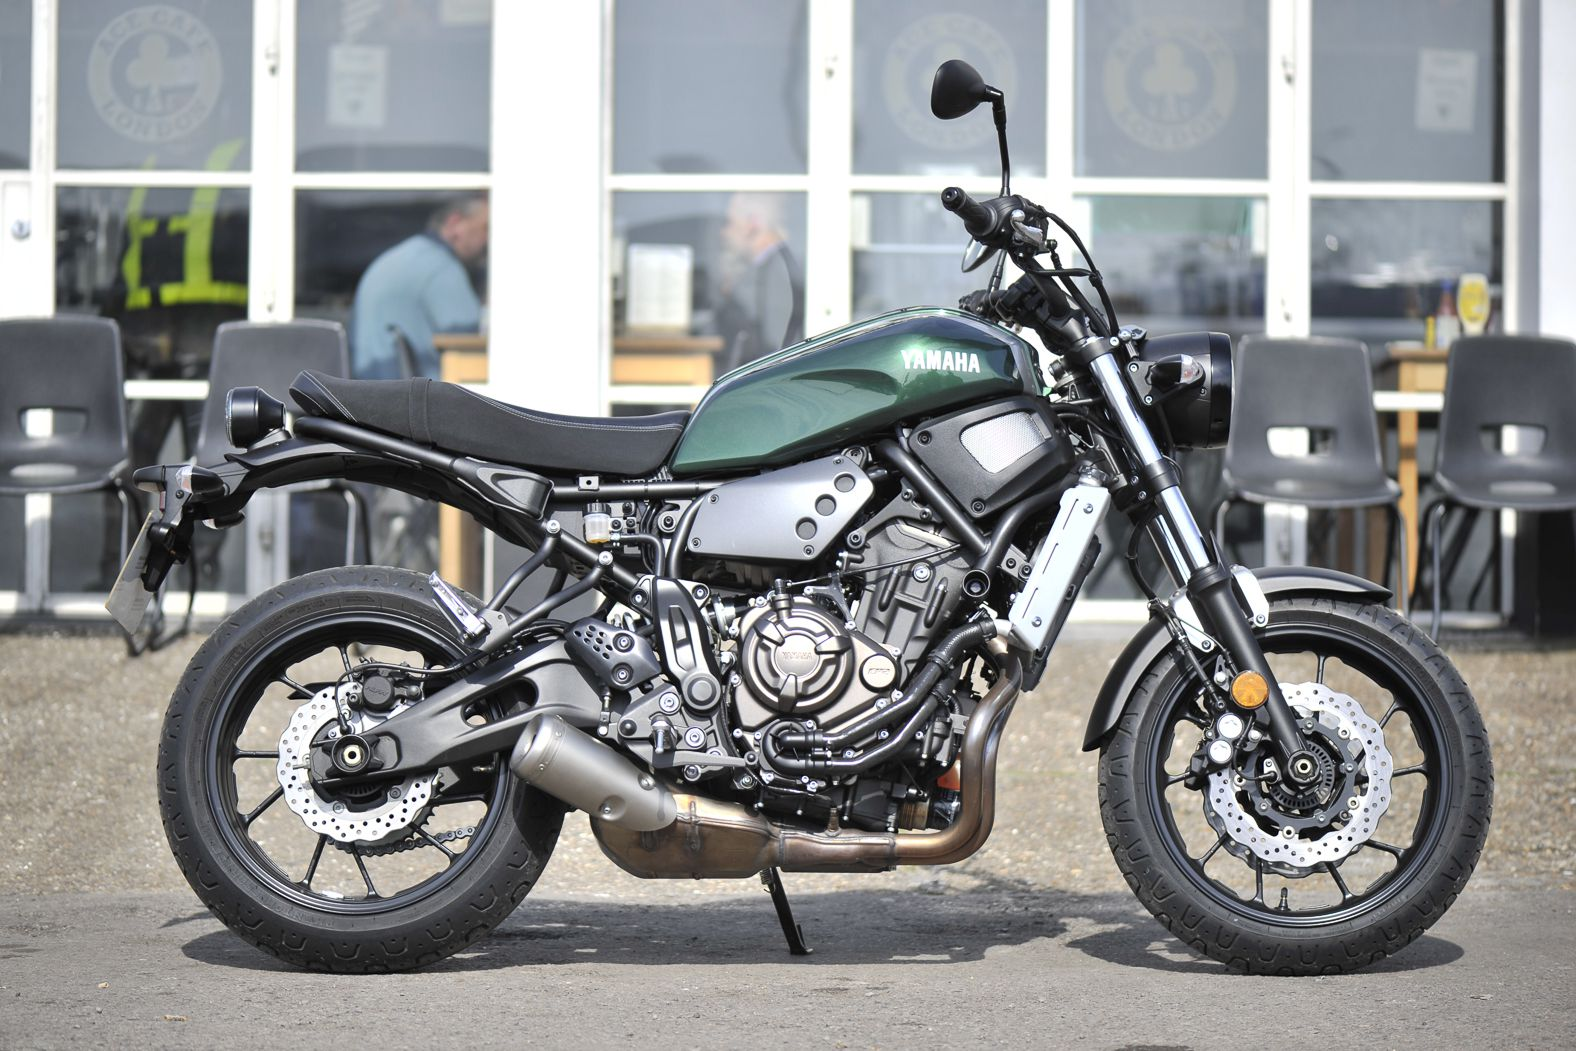 Retro Bike Group Test Yamaha XSR700 Vs Ducati Scrambler Bonneville Street Twin Guzzi